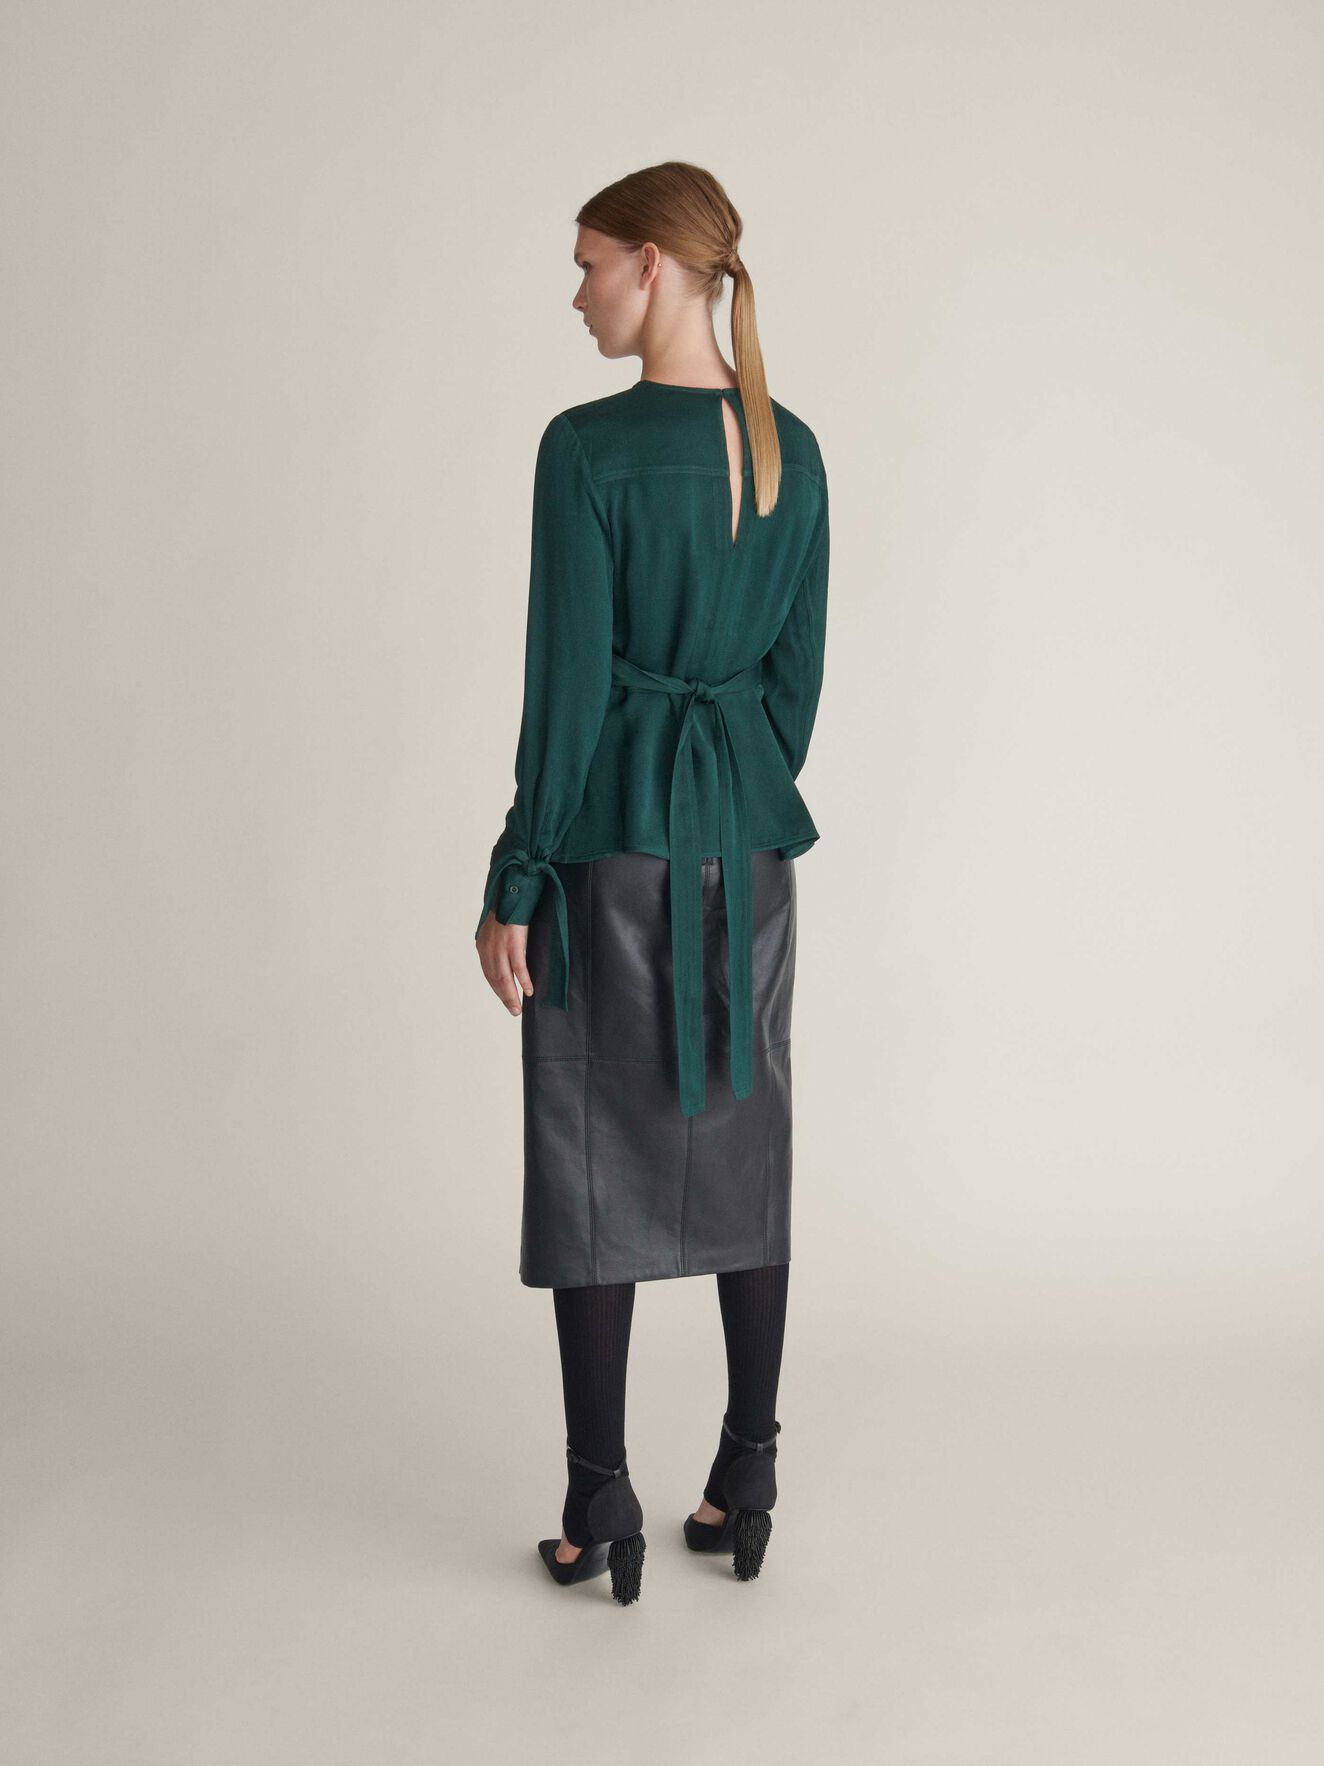 Simmone Top in Dark Forest from Tiger of Sweden